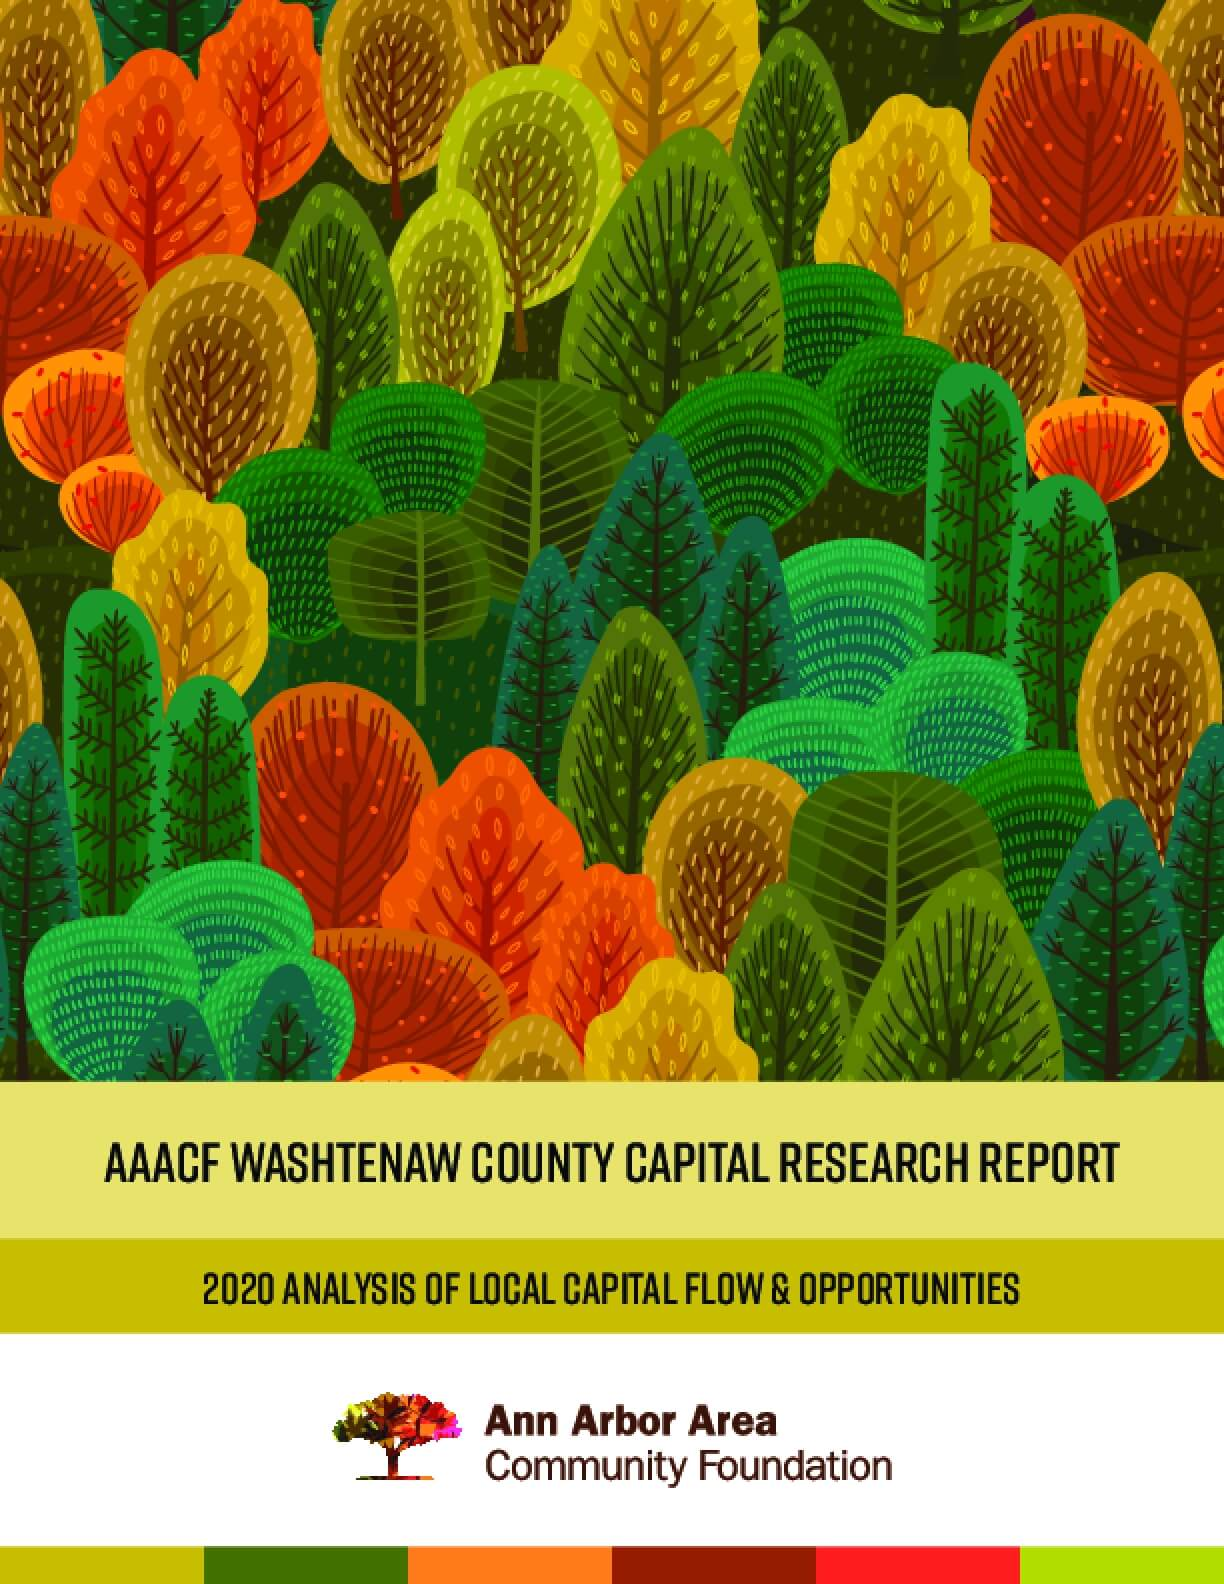 AAACF Washtenaw County Capital Research Report: 2020 Analysis of Local Capital Flow & Opportunities